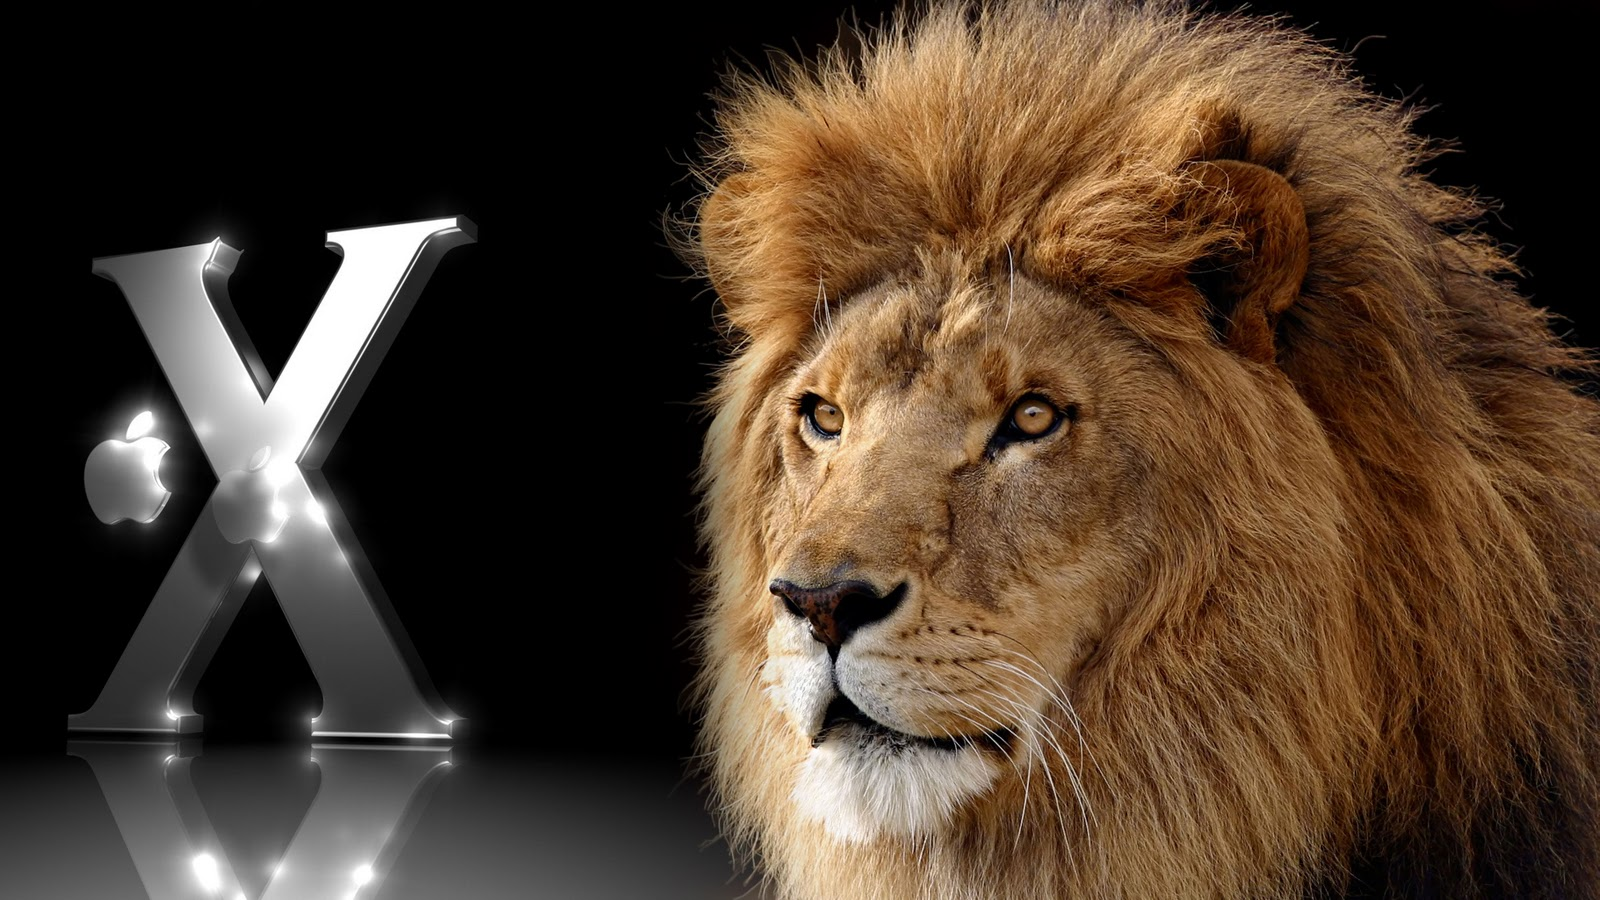 Funny Image Collection: Rasta Lion layouts & backgrounds created by CoolChasers!